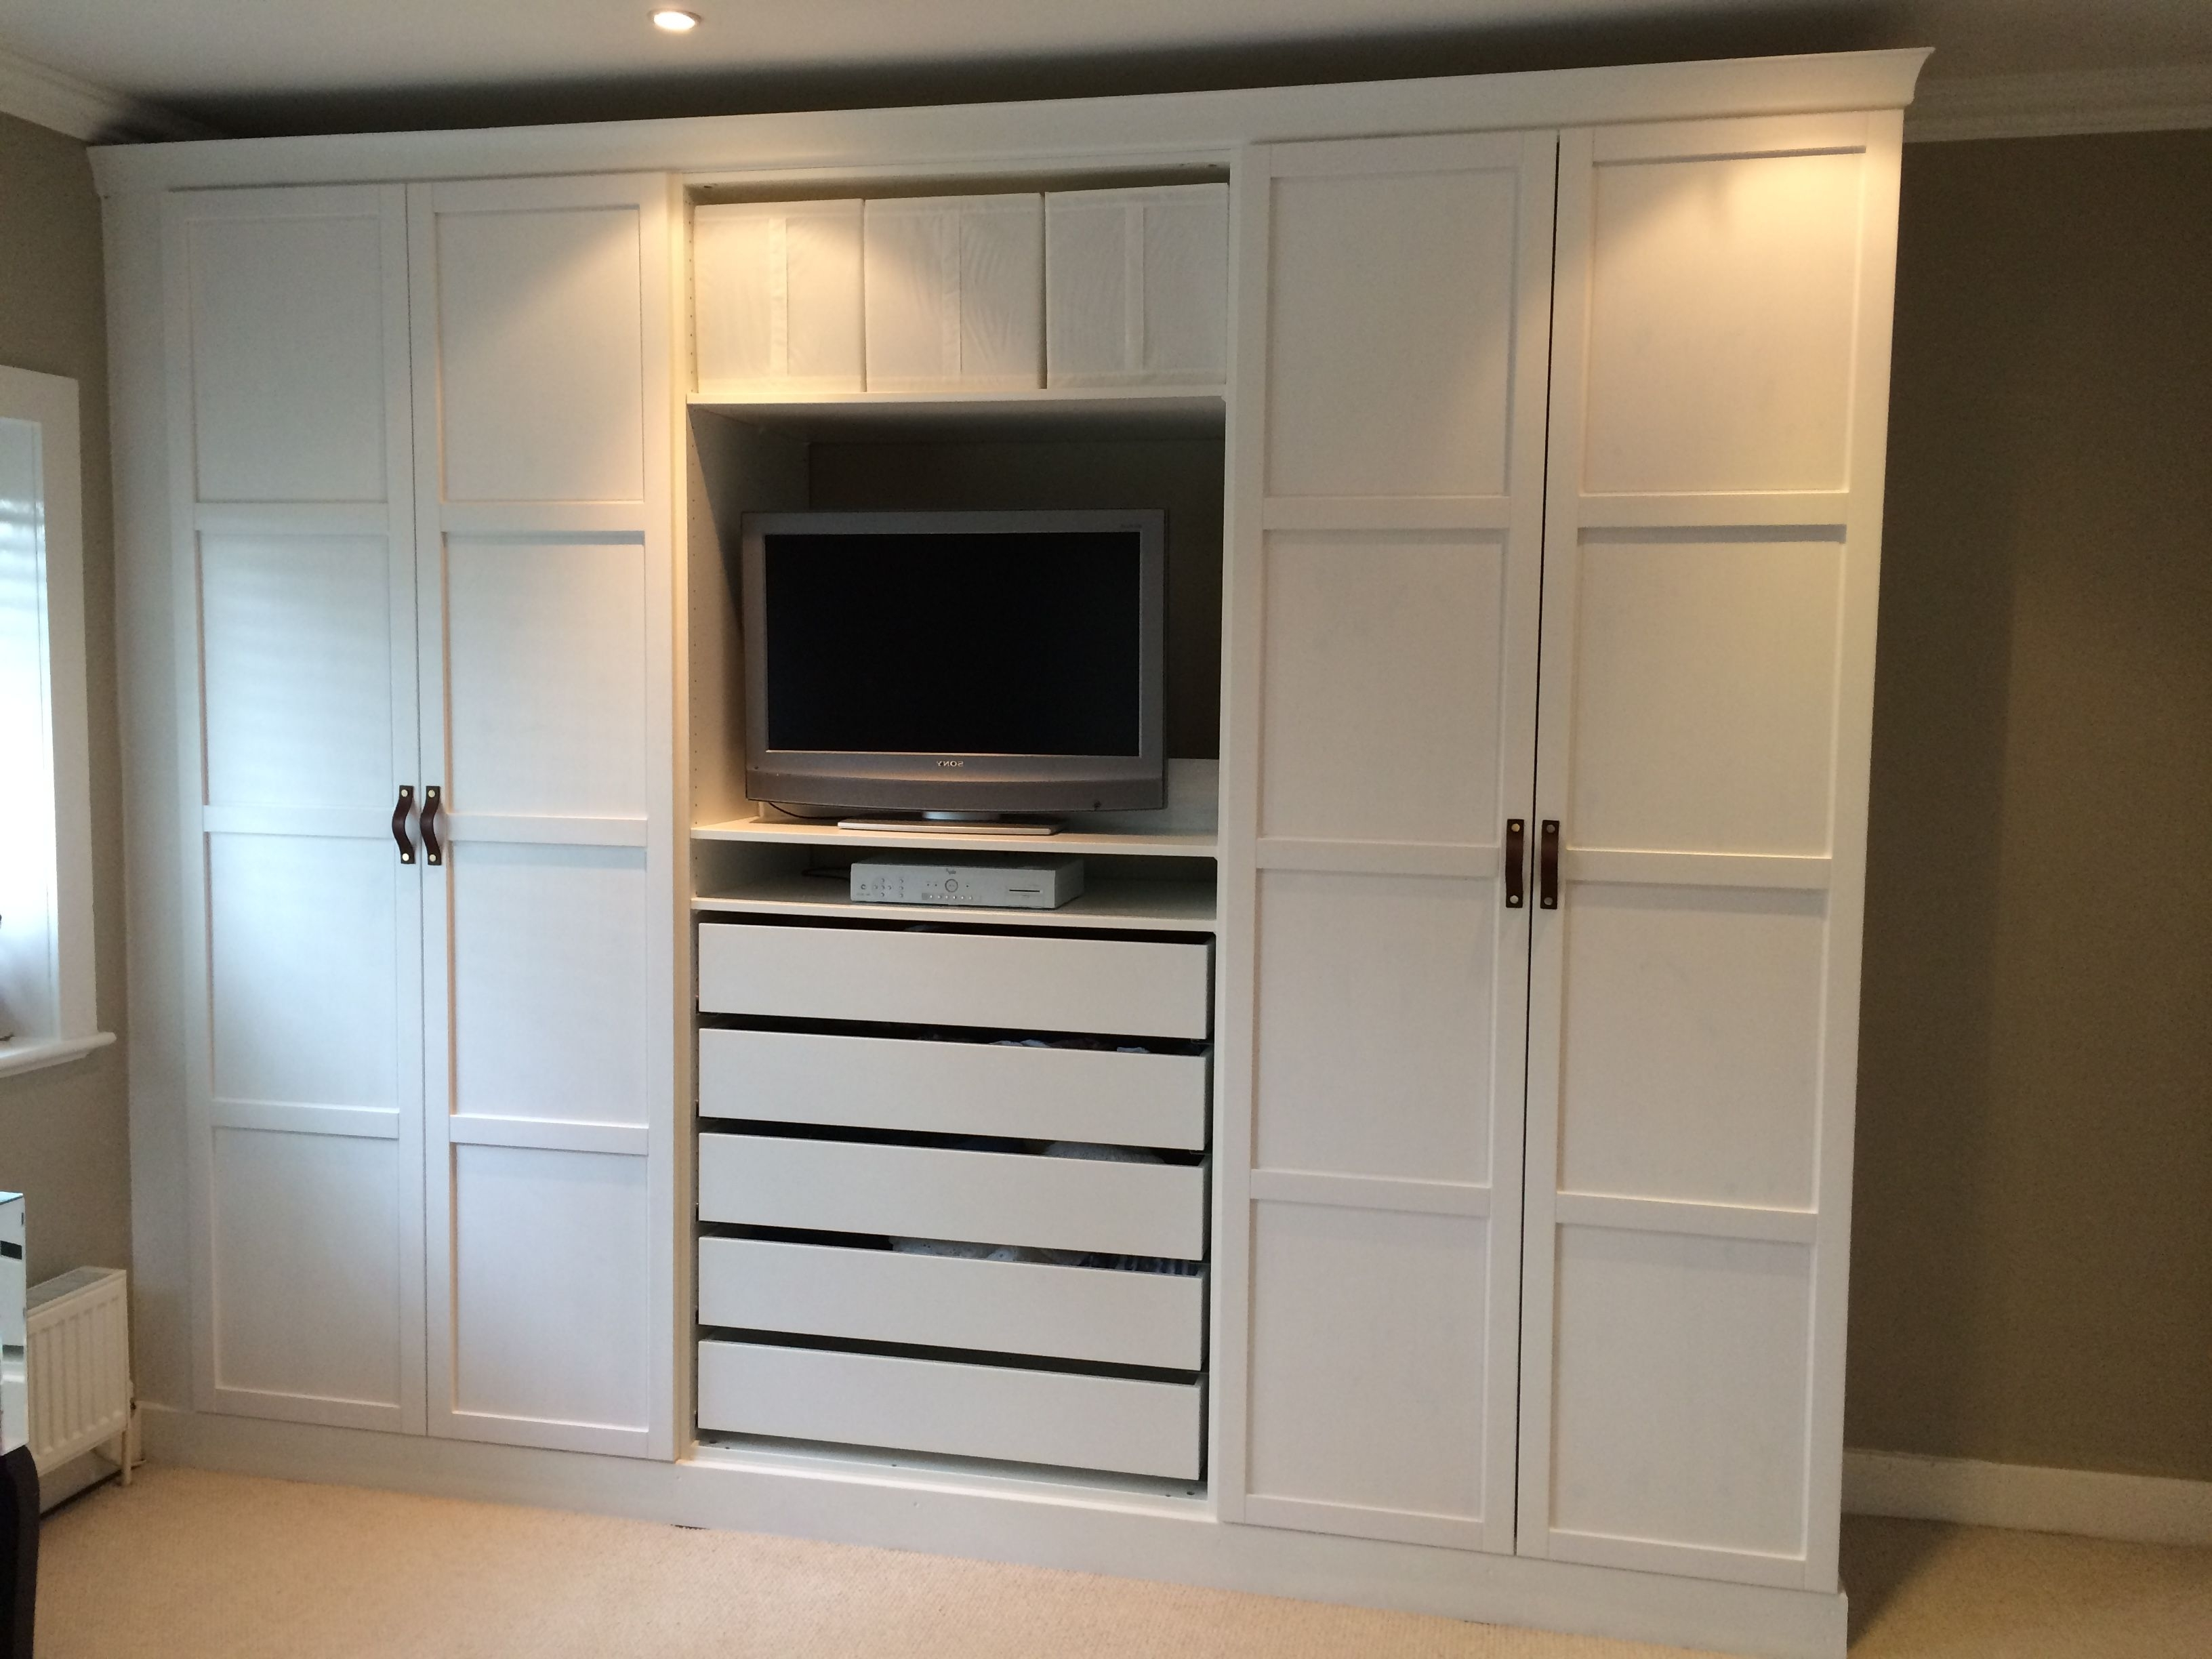 Widely Used Wardrobes And Drawers Combo Regarding Ikea Pax Wardrobes Hacked To Look Built In (View 9 of 15)